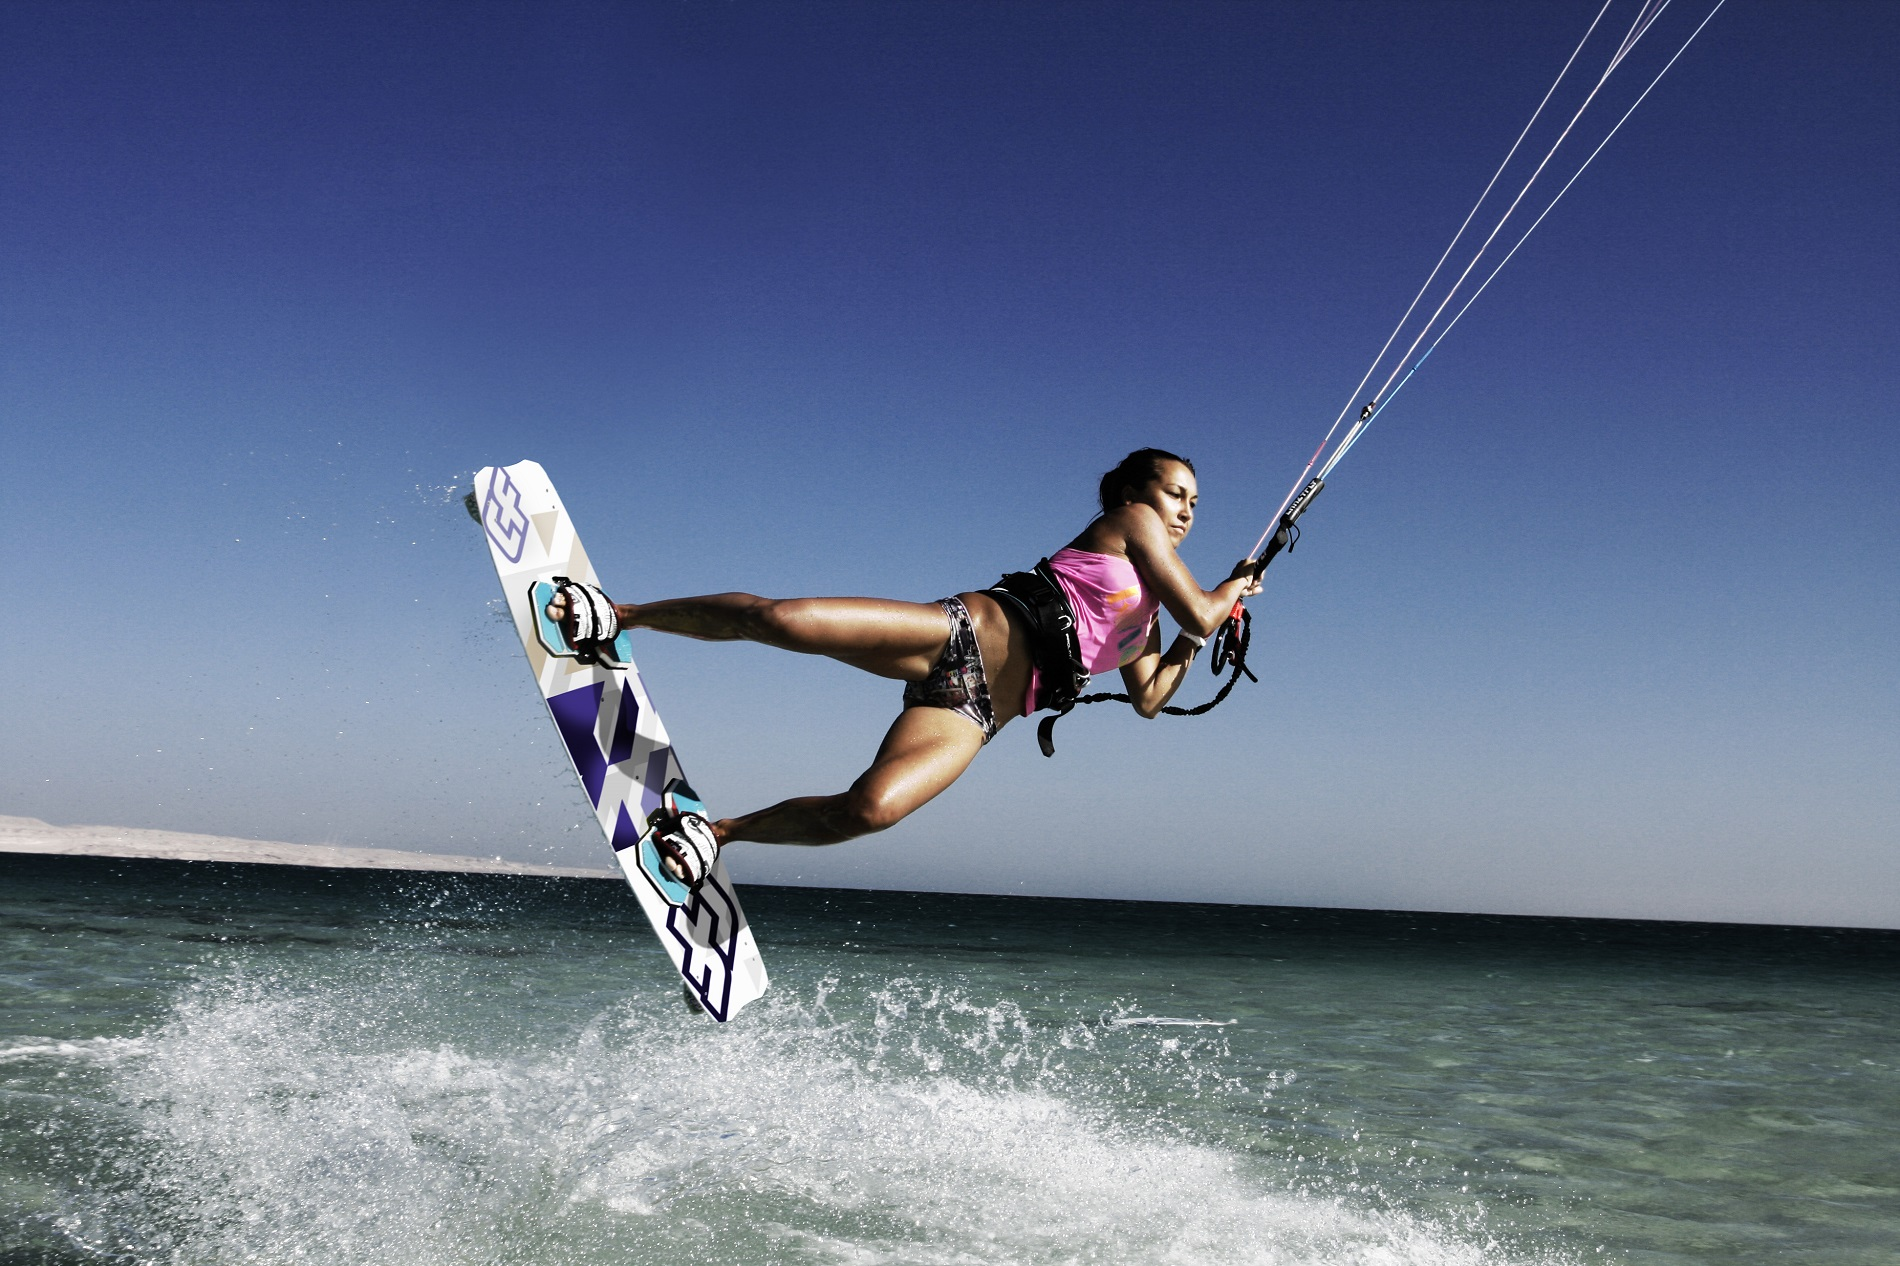 Best Sardinia Kitesurfing Spots: Review of the best Kite Spot of Sardinia